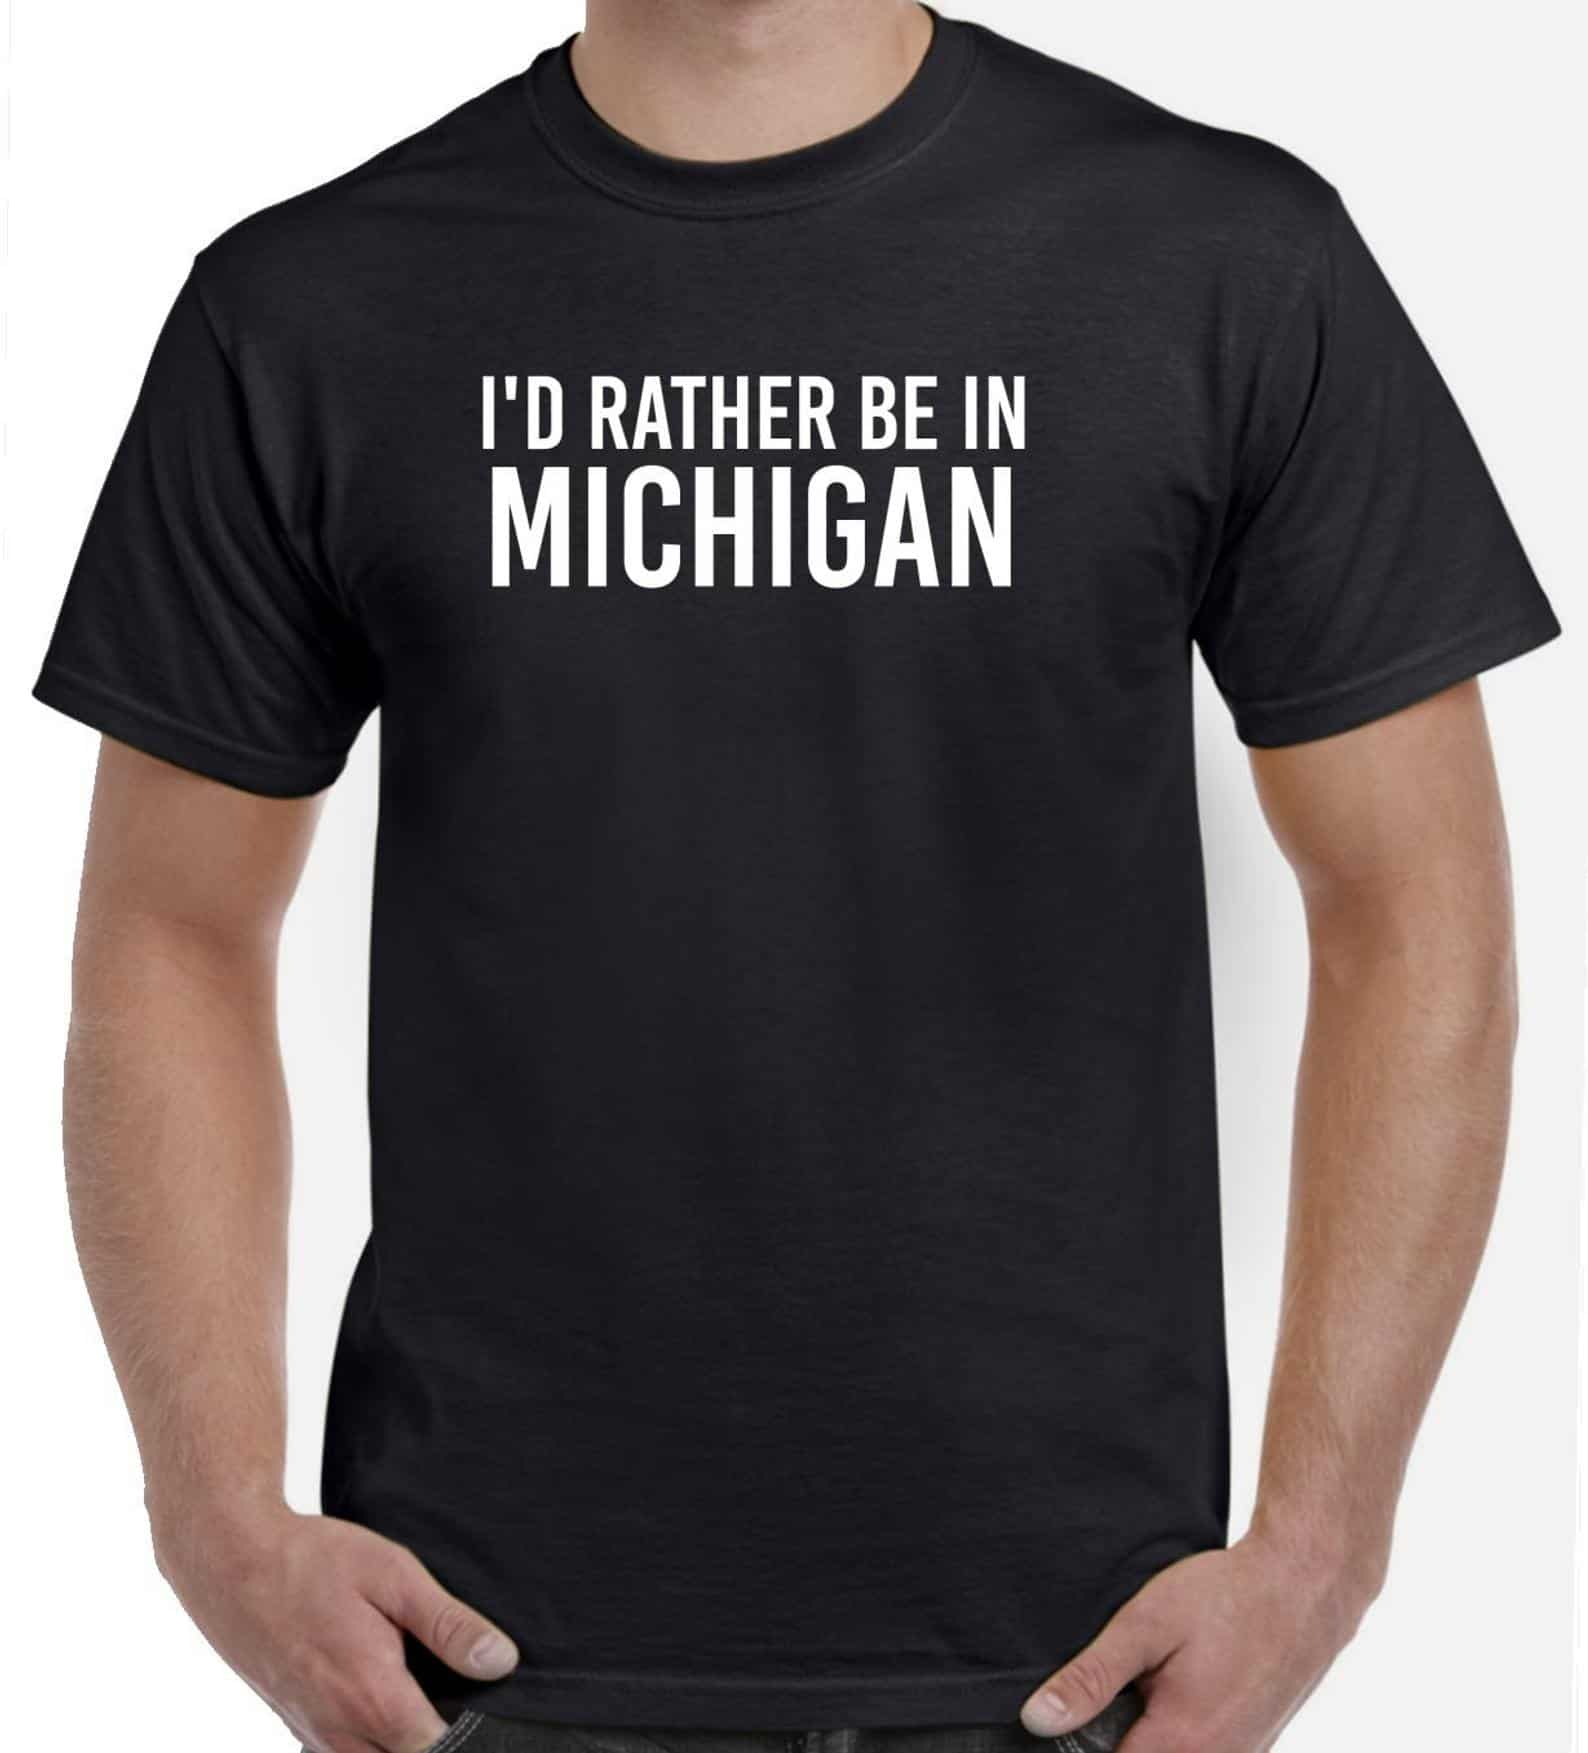 I'd Rather Be in Michigan Shirt - an ultimate michigan gift idea